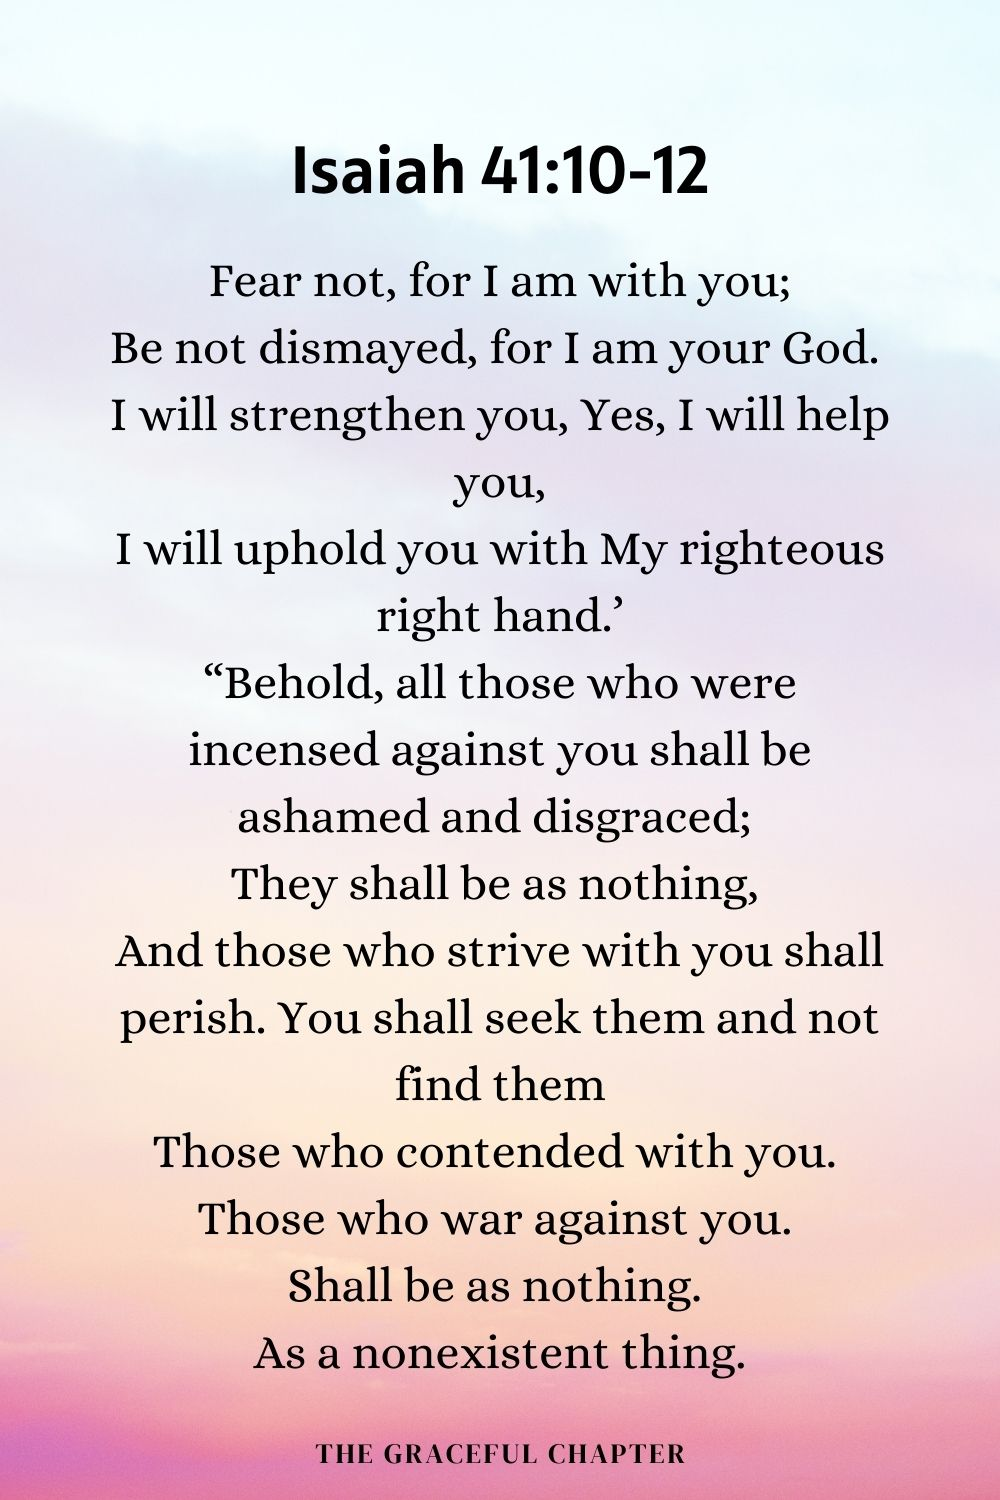 Isaiah 41:10-12 - fear not, for I am with you